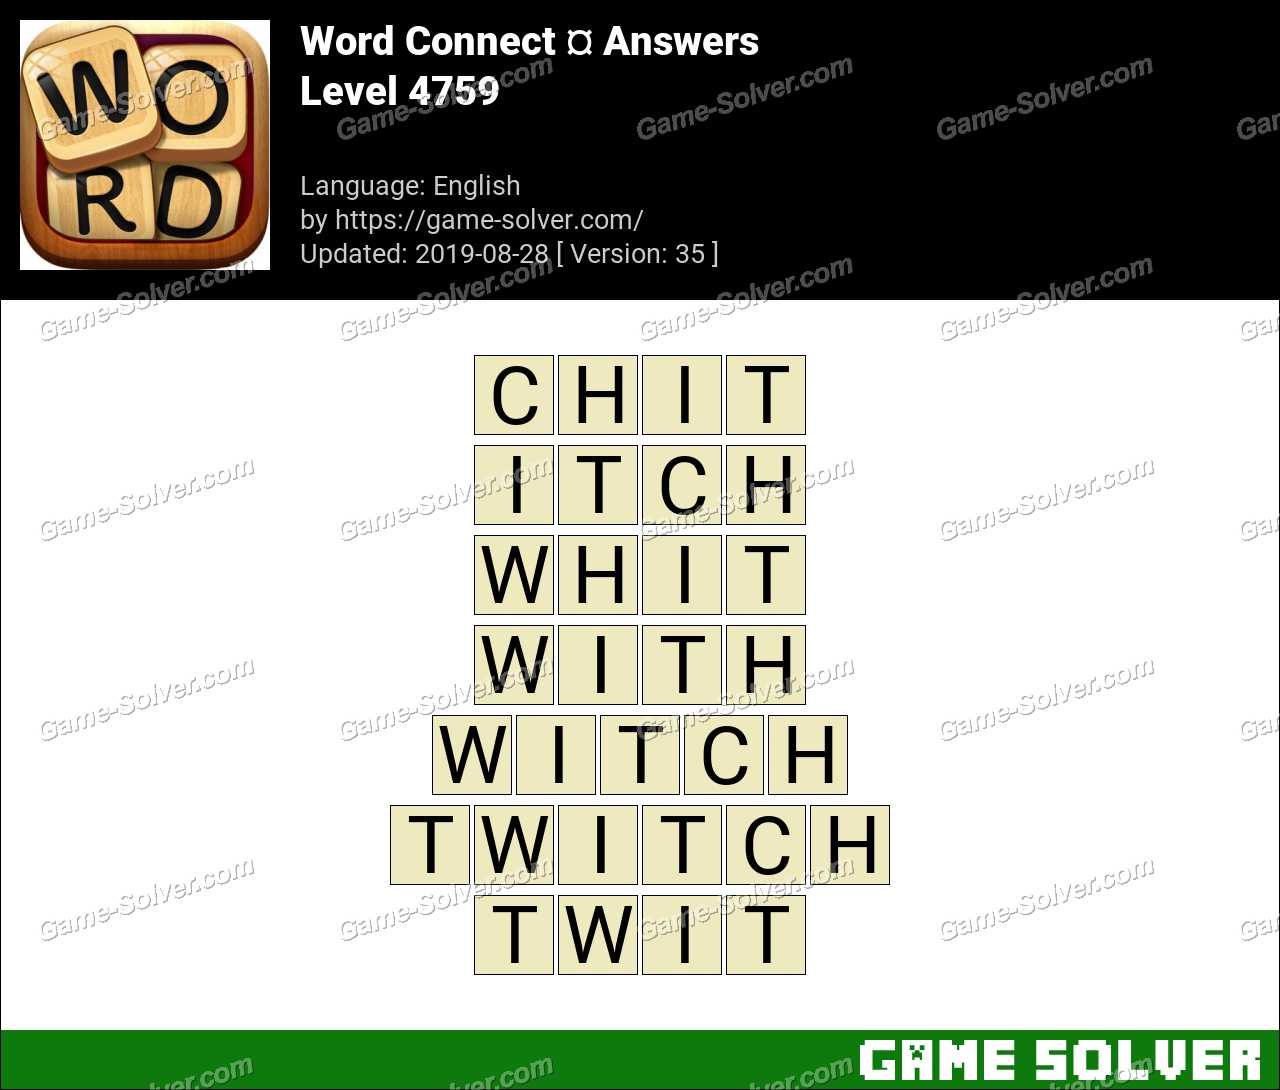 Word Connect Level 4759 Answers